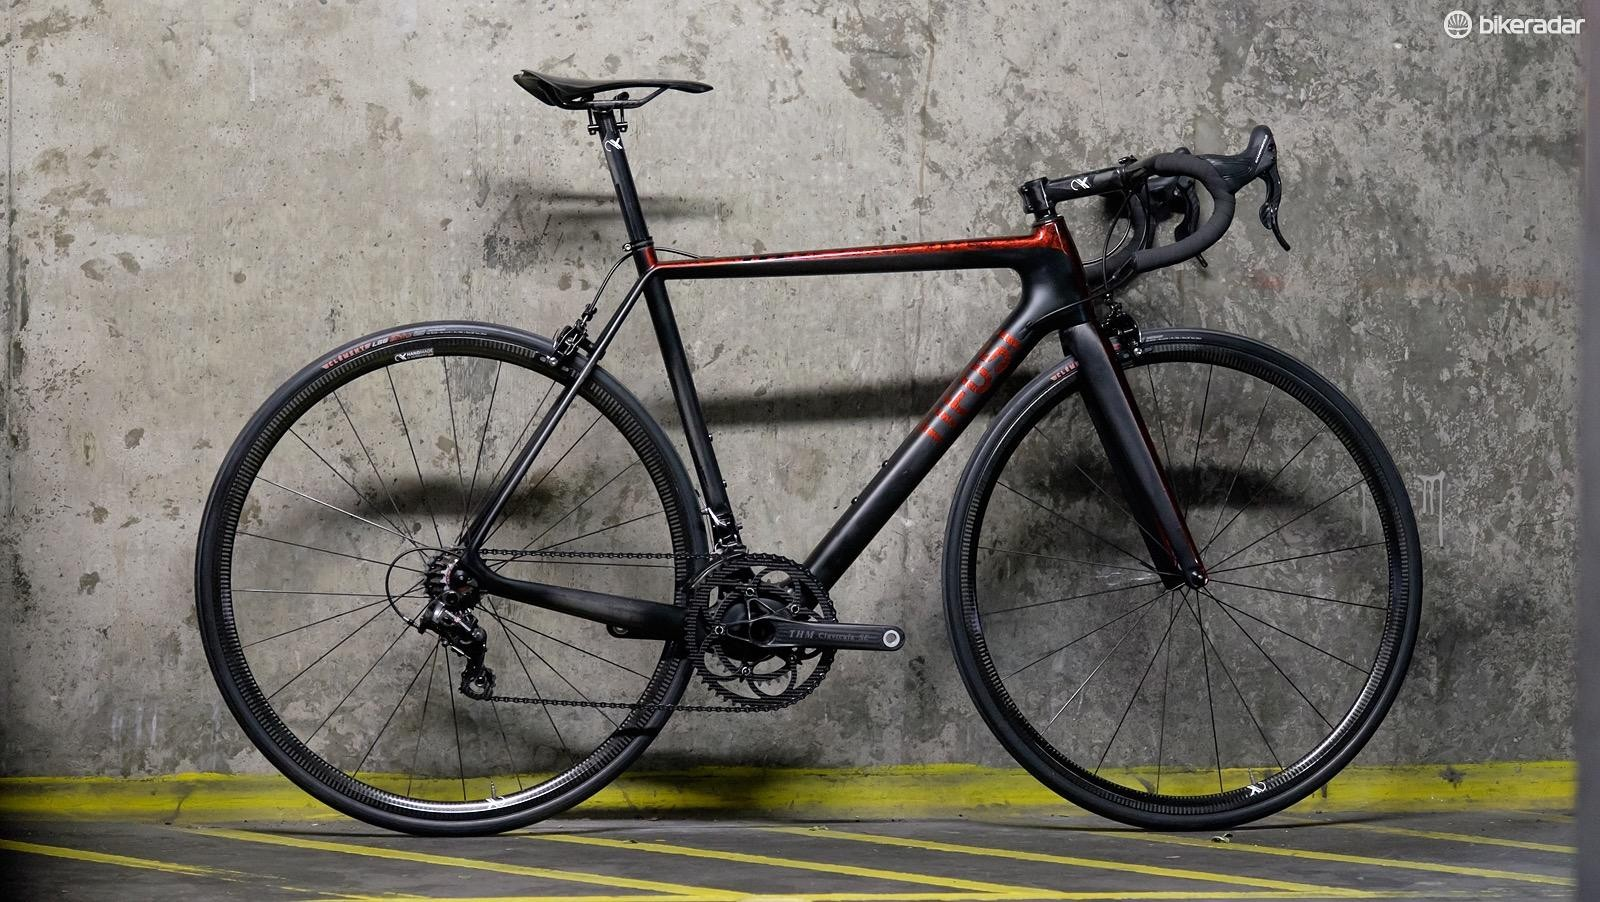 This Tifosi may look like a custom build but it's actually ready to order on the company's website